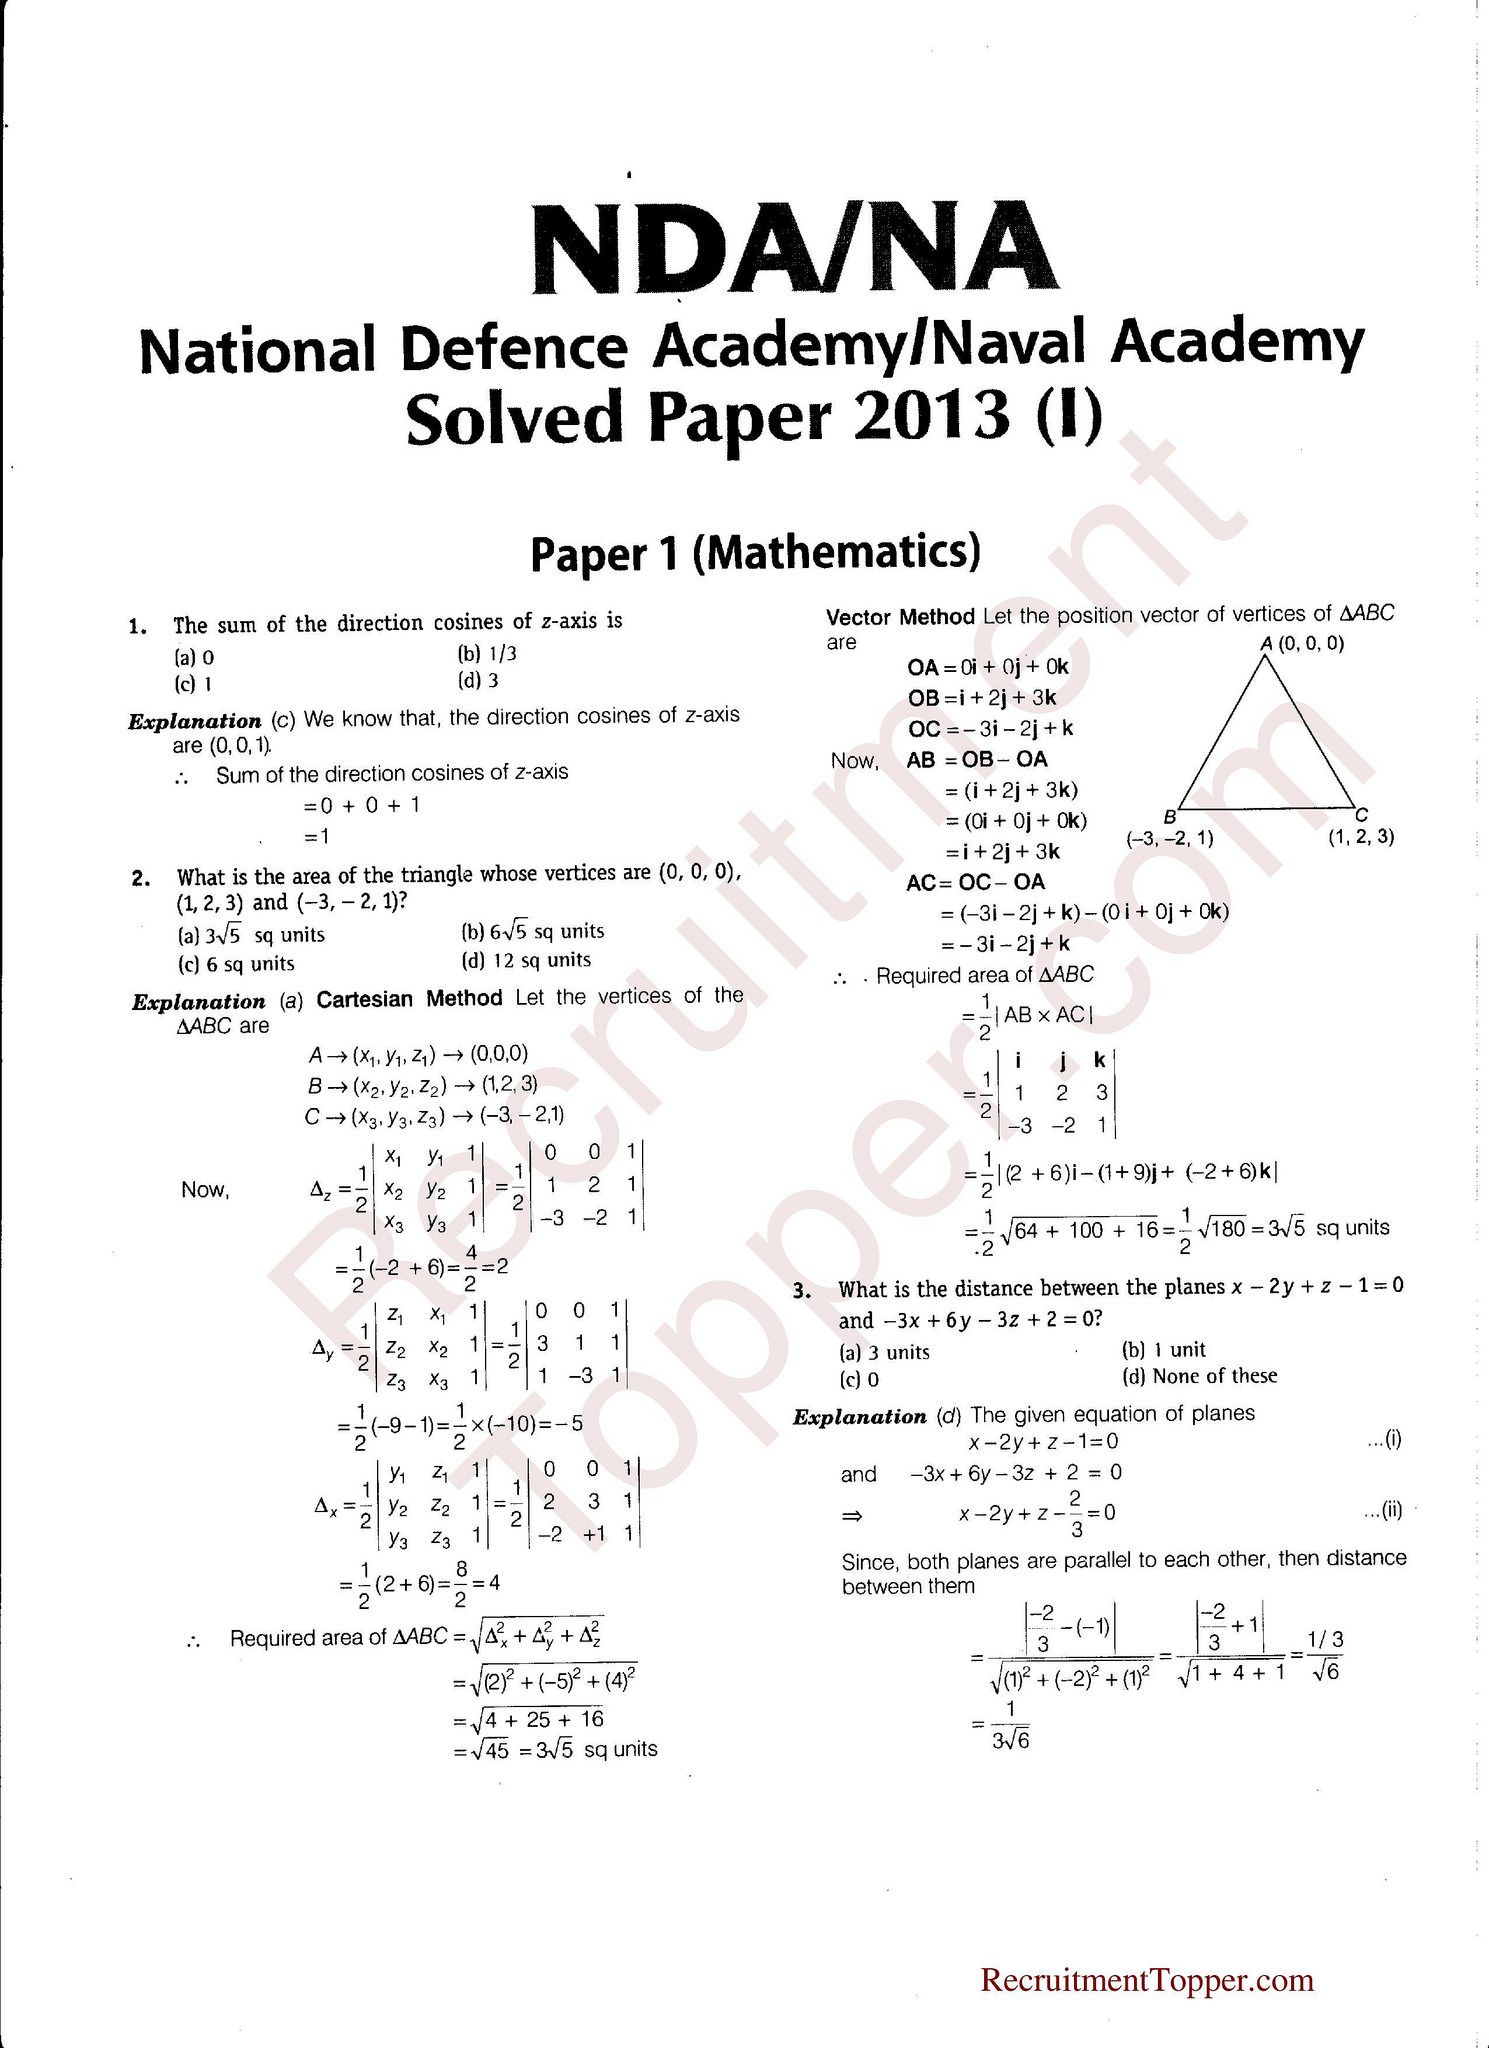 nda solved question paper pdf download